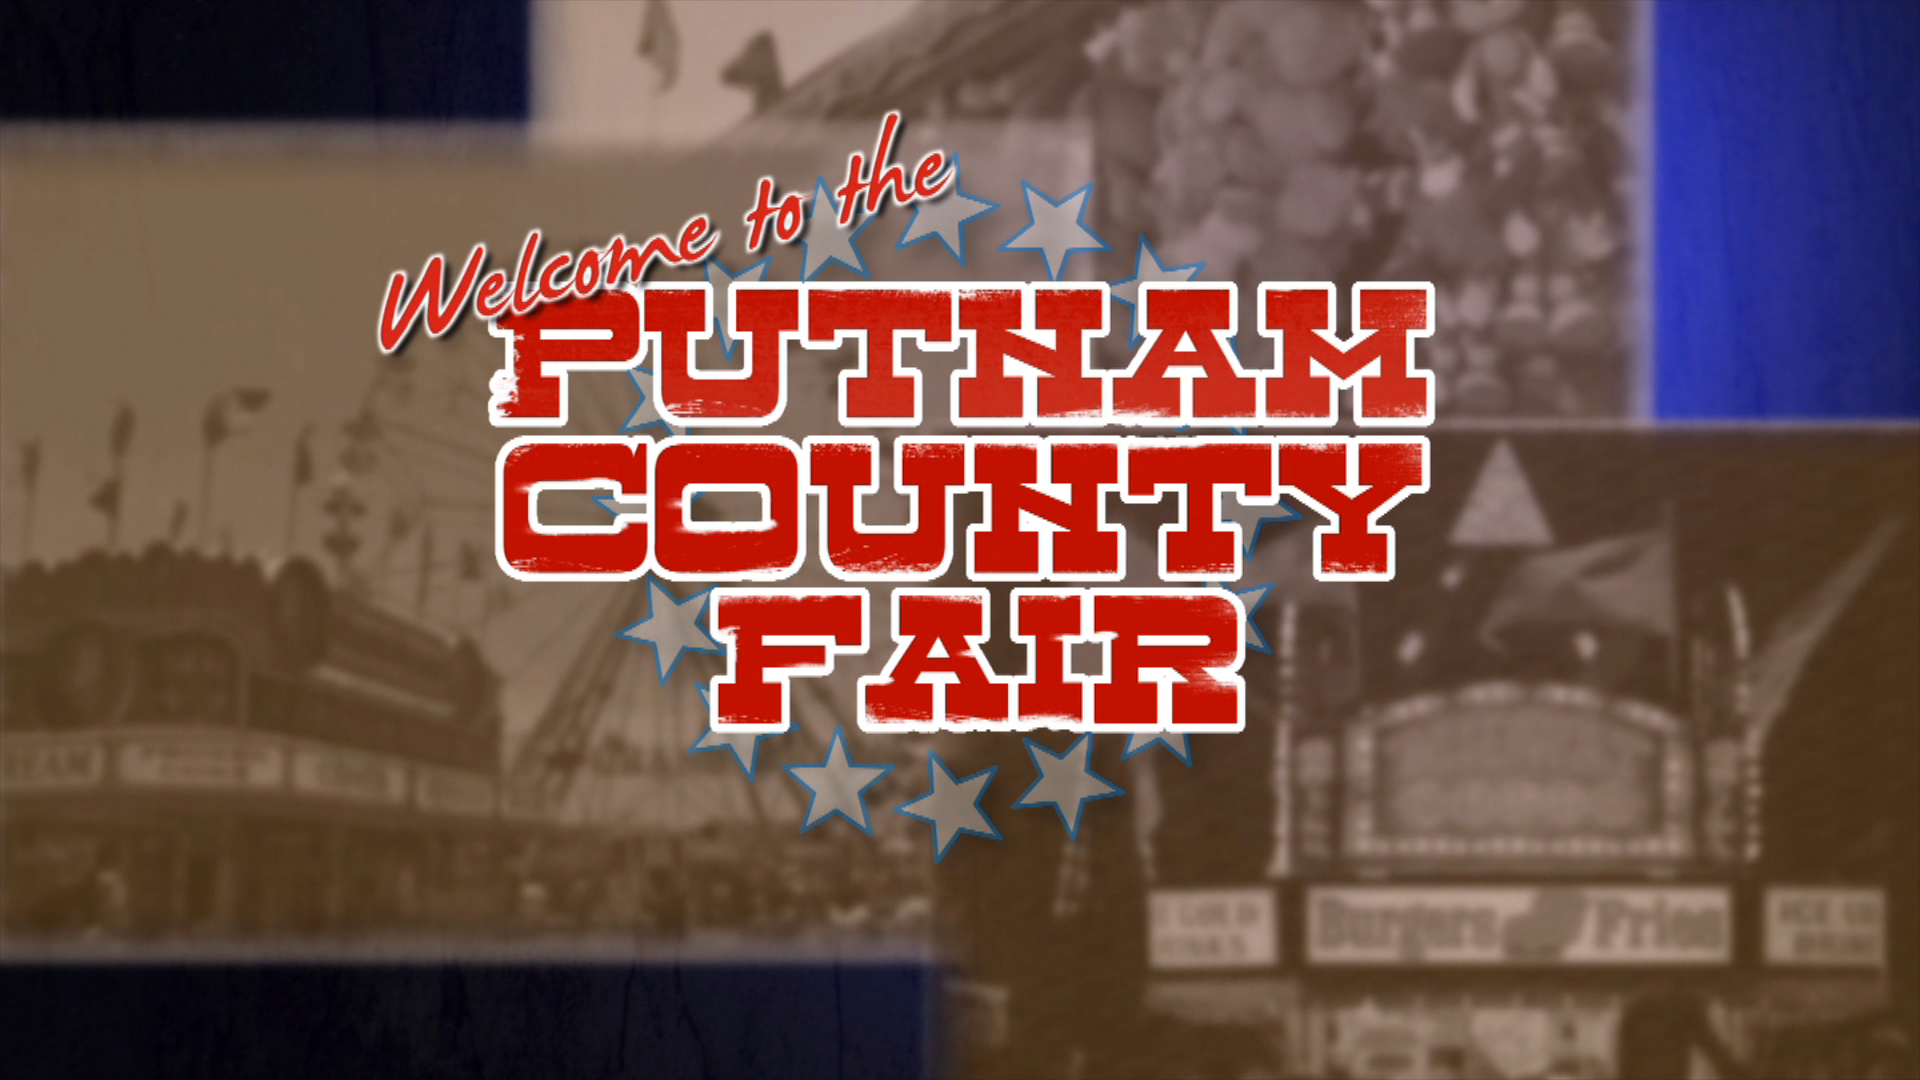 See you at the Putnam County Fair!